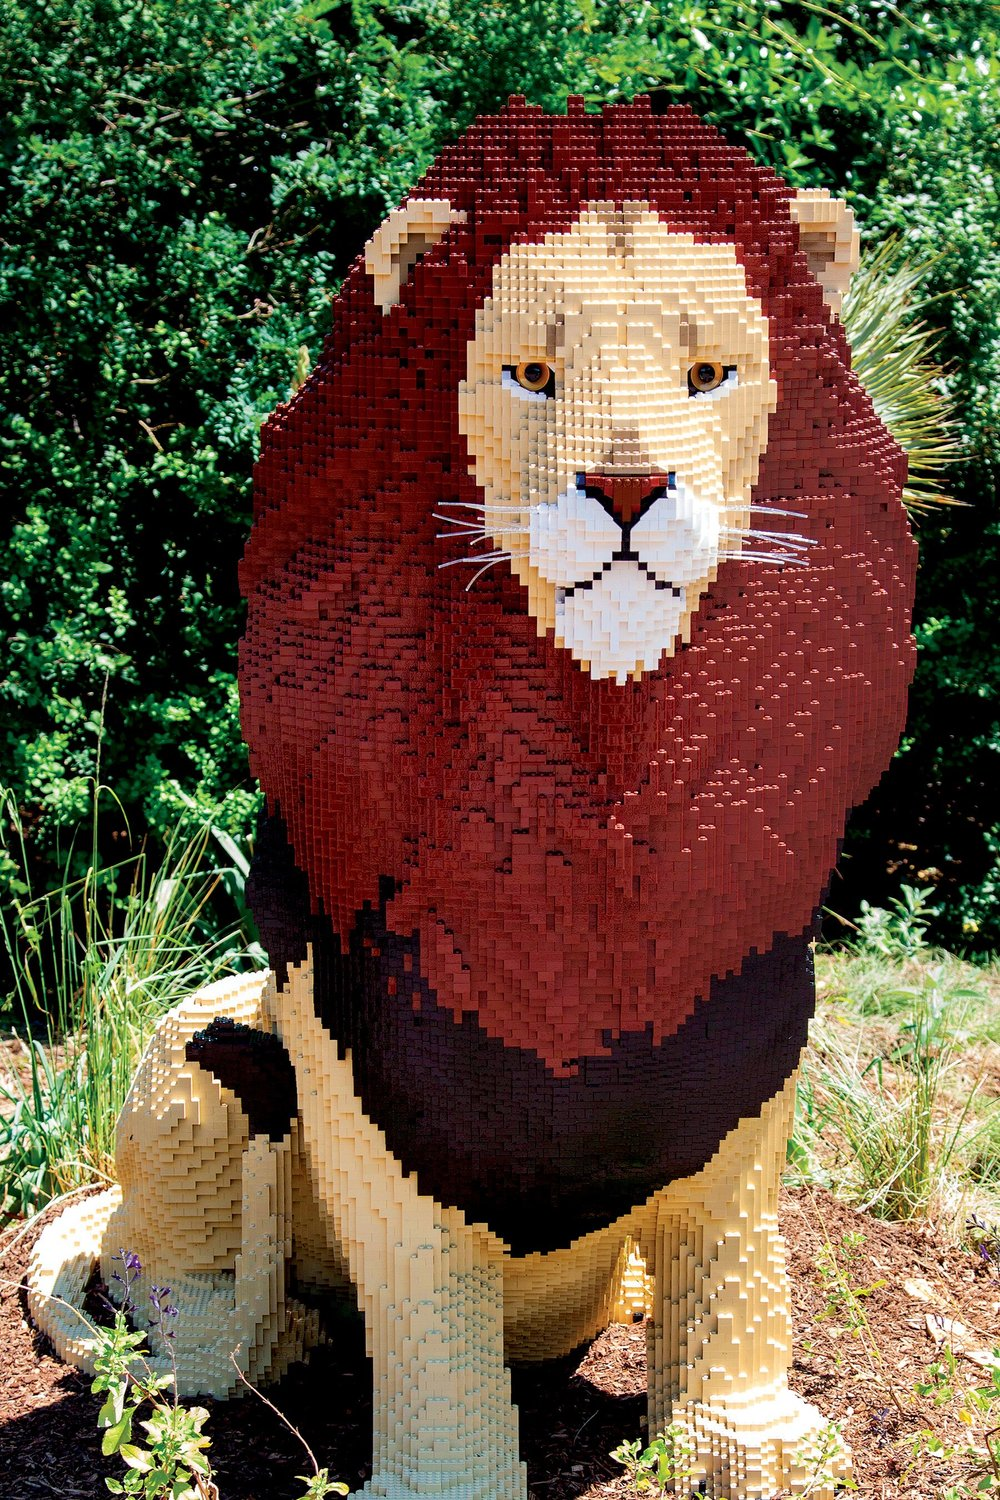 Lion Sculpture Made of LEGO Pieces